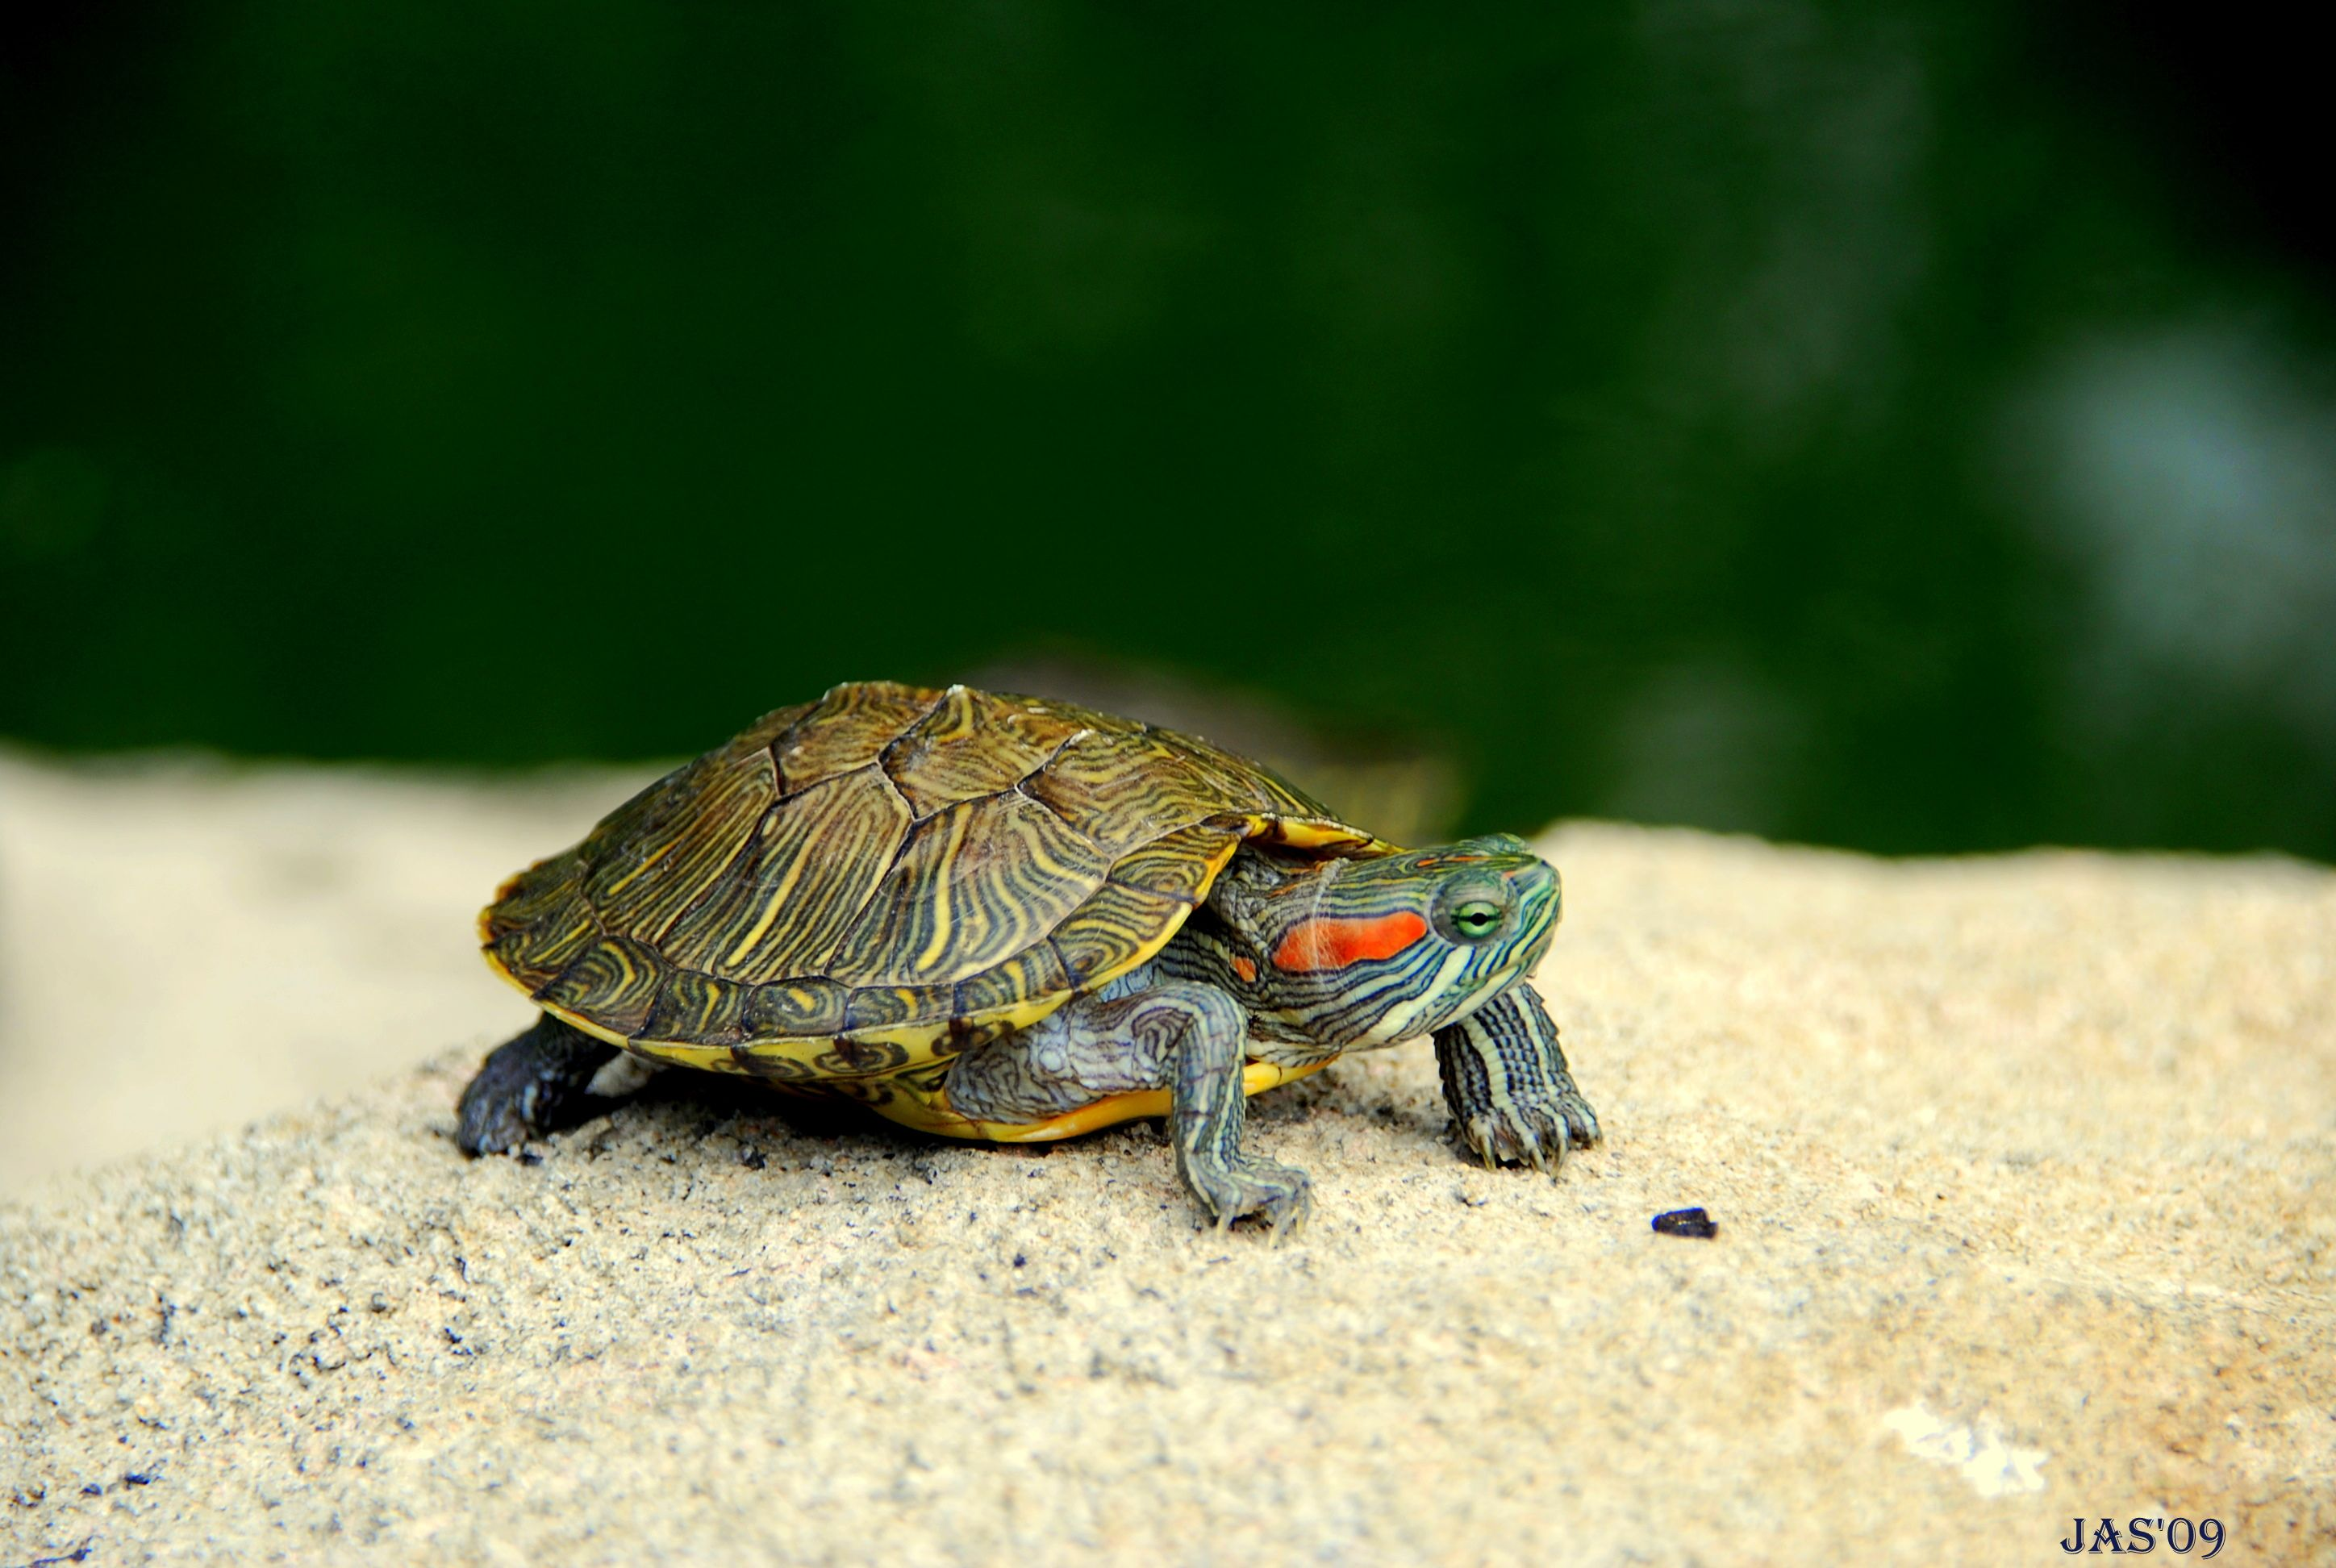 2896x1944 MX-78 Turtle Wallpapers, Turtle Adorable Desktop Pics for Free | 35+